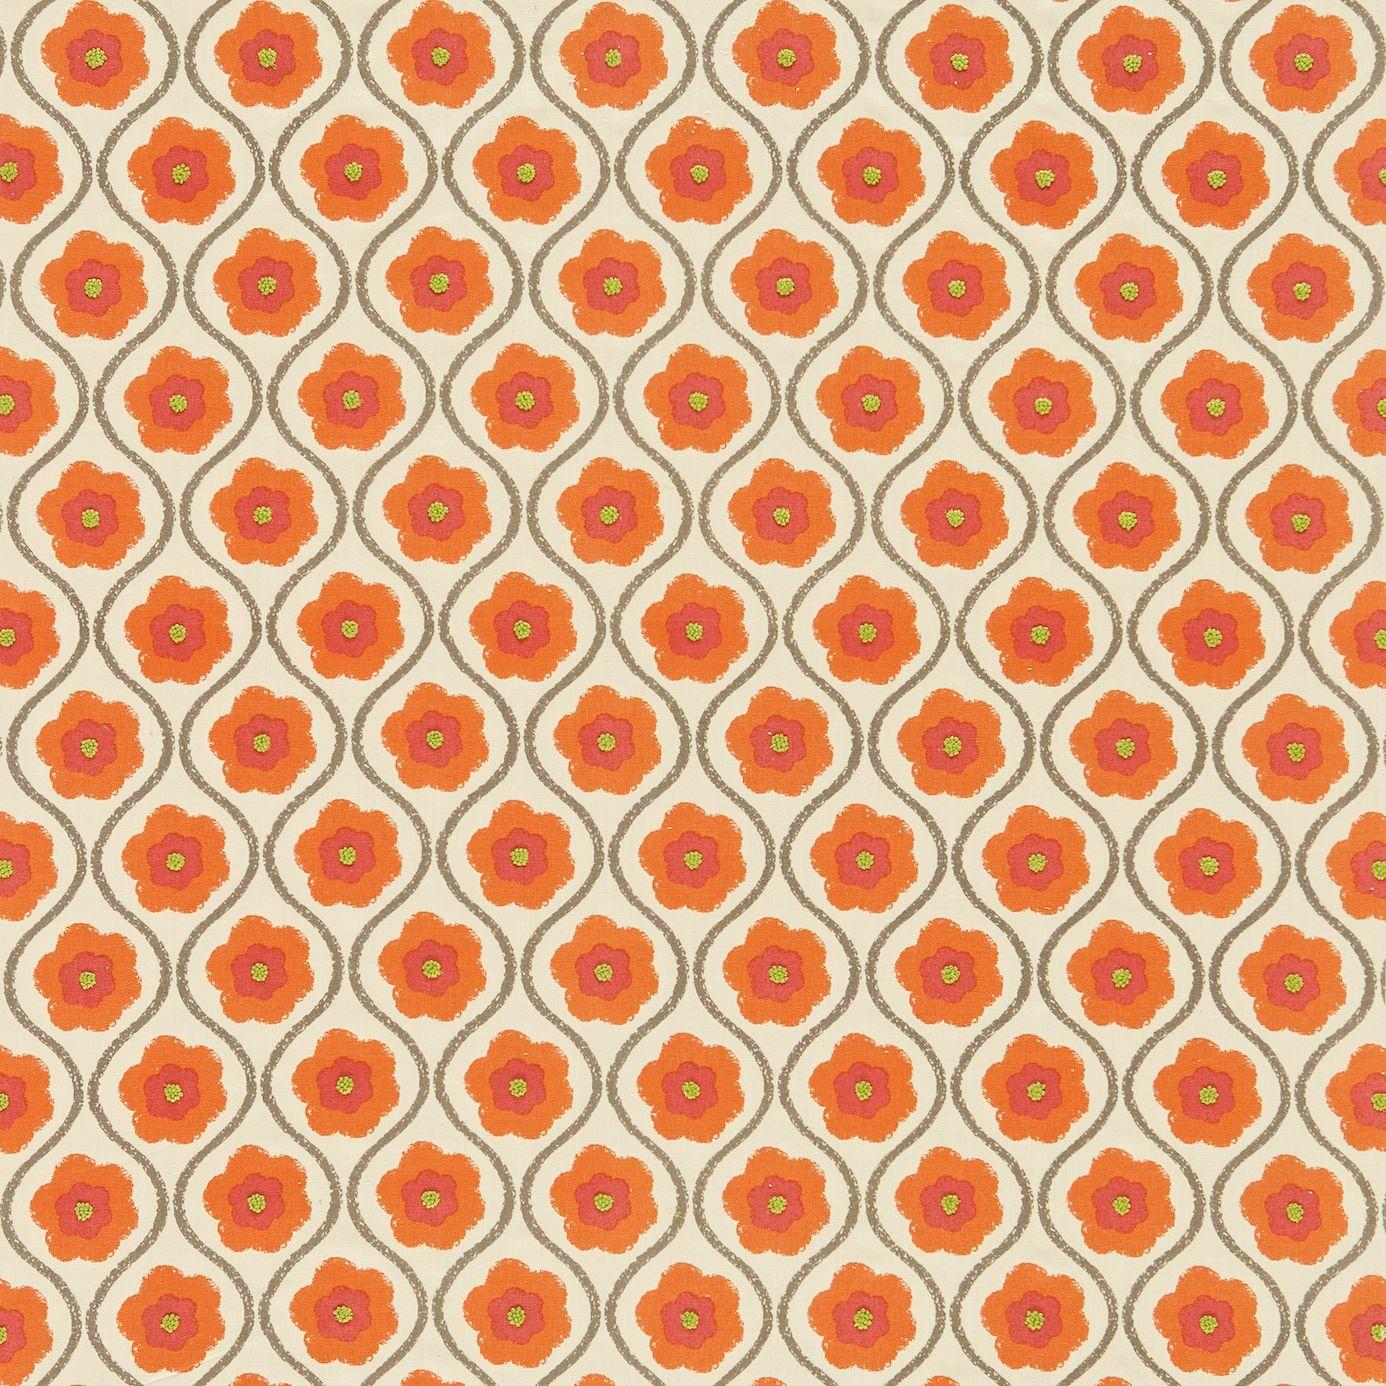 Sira Fabric Orange Zest Neutral 130336 Harlequin Folia Fabrics Collection